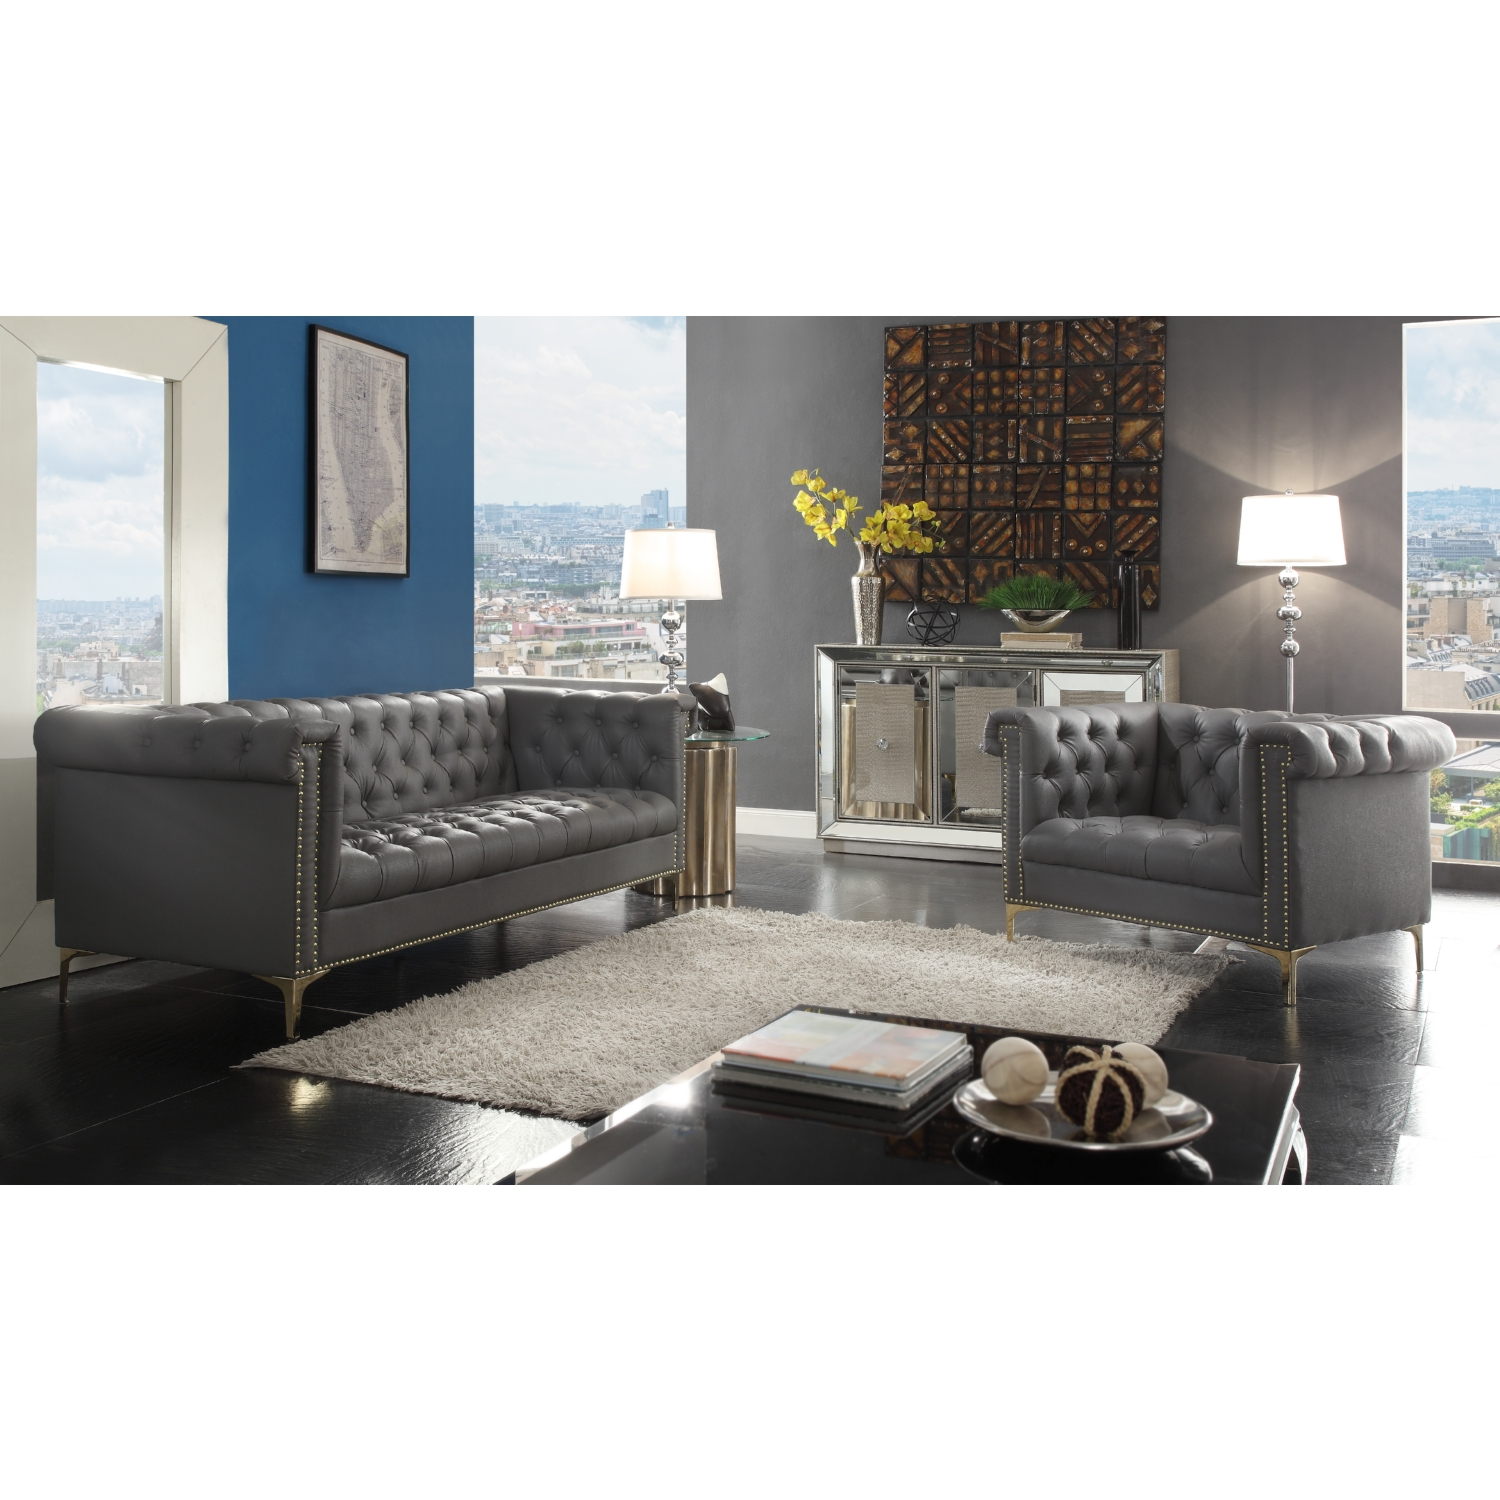 Chic Home FSA2573 Winston Chesterfield Style Sofa in Tufted Grey